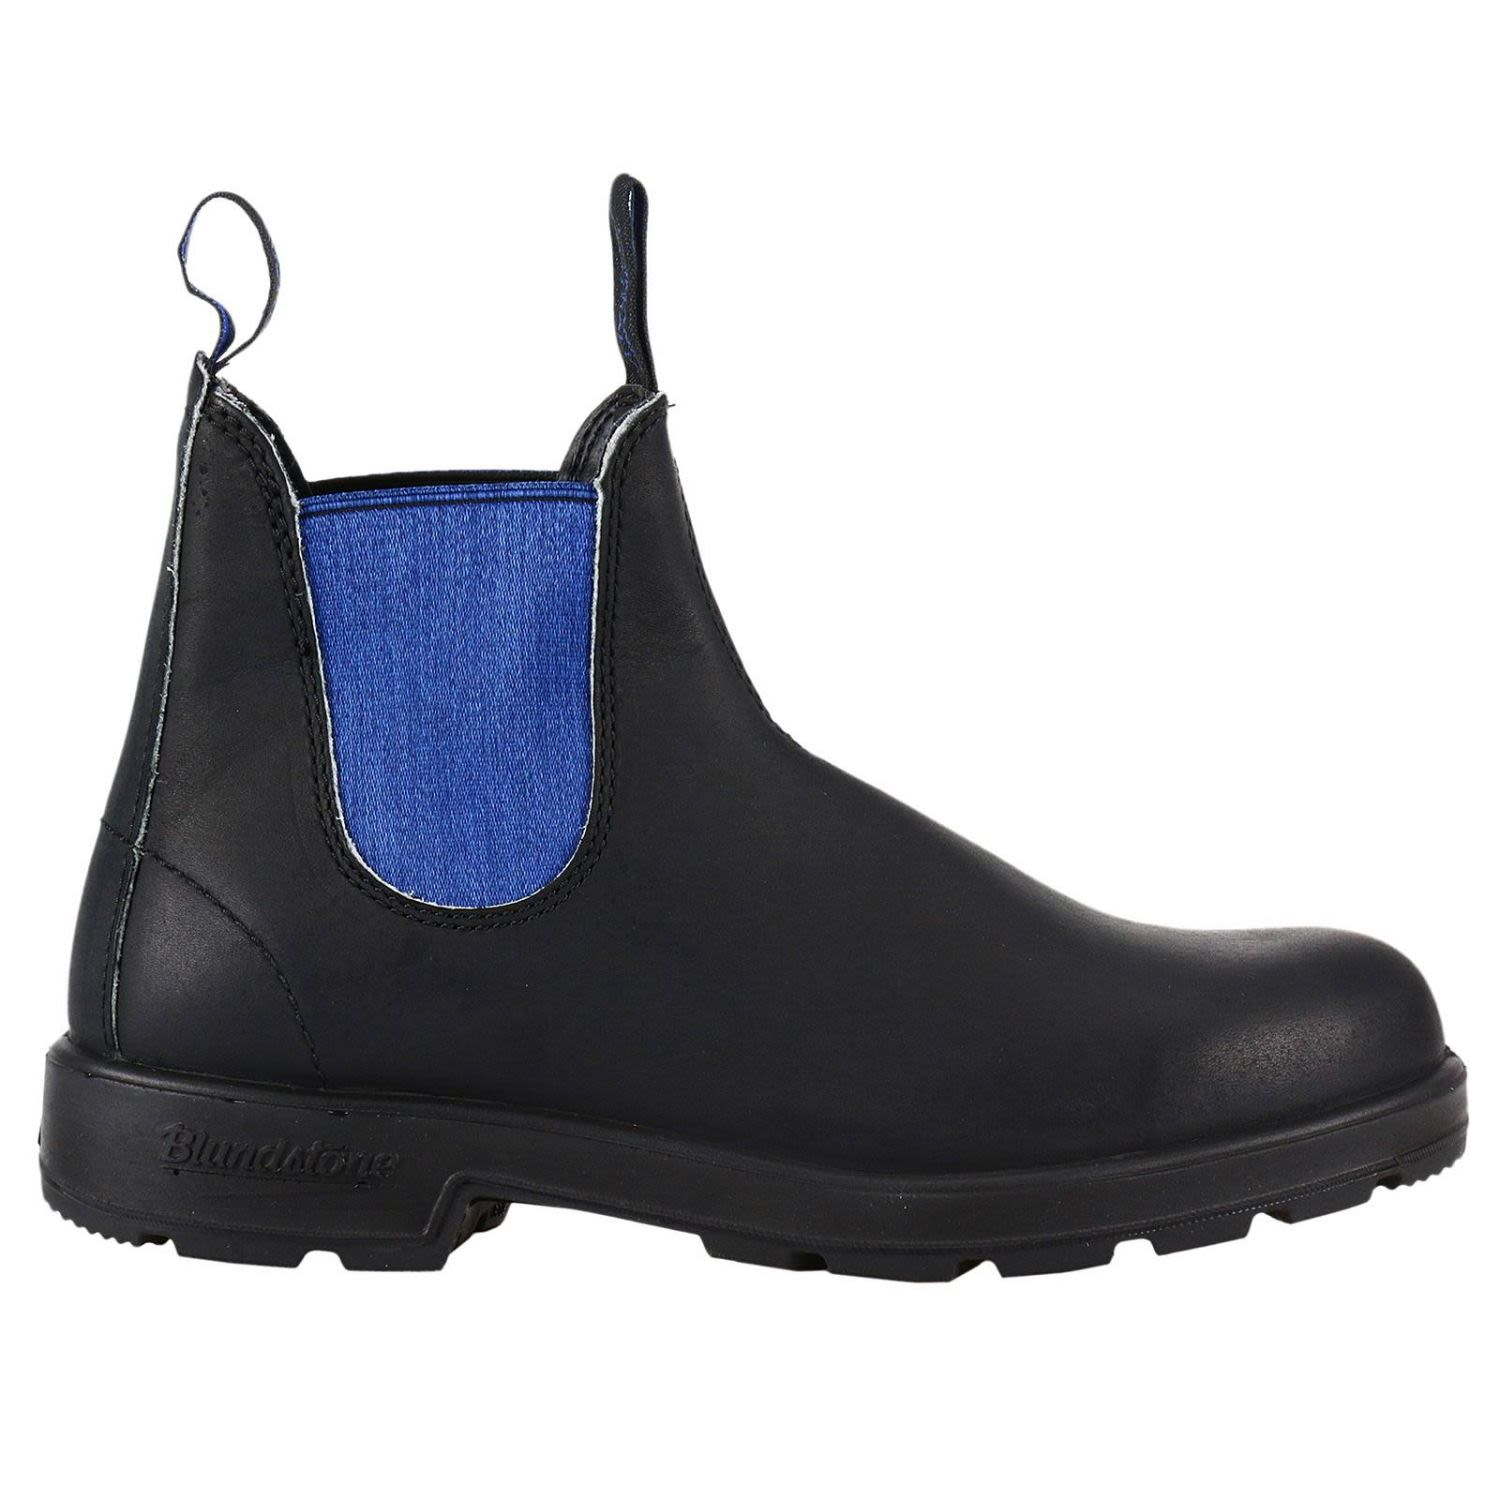 BLUNDSTONE MEN'S  BLACK LEATHER ANKLE BOOTS